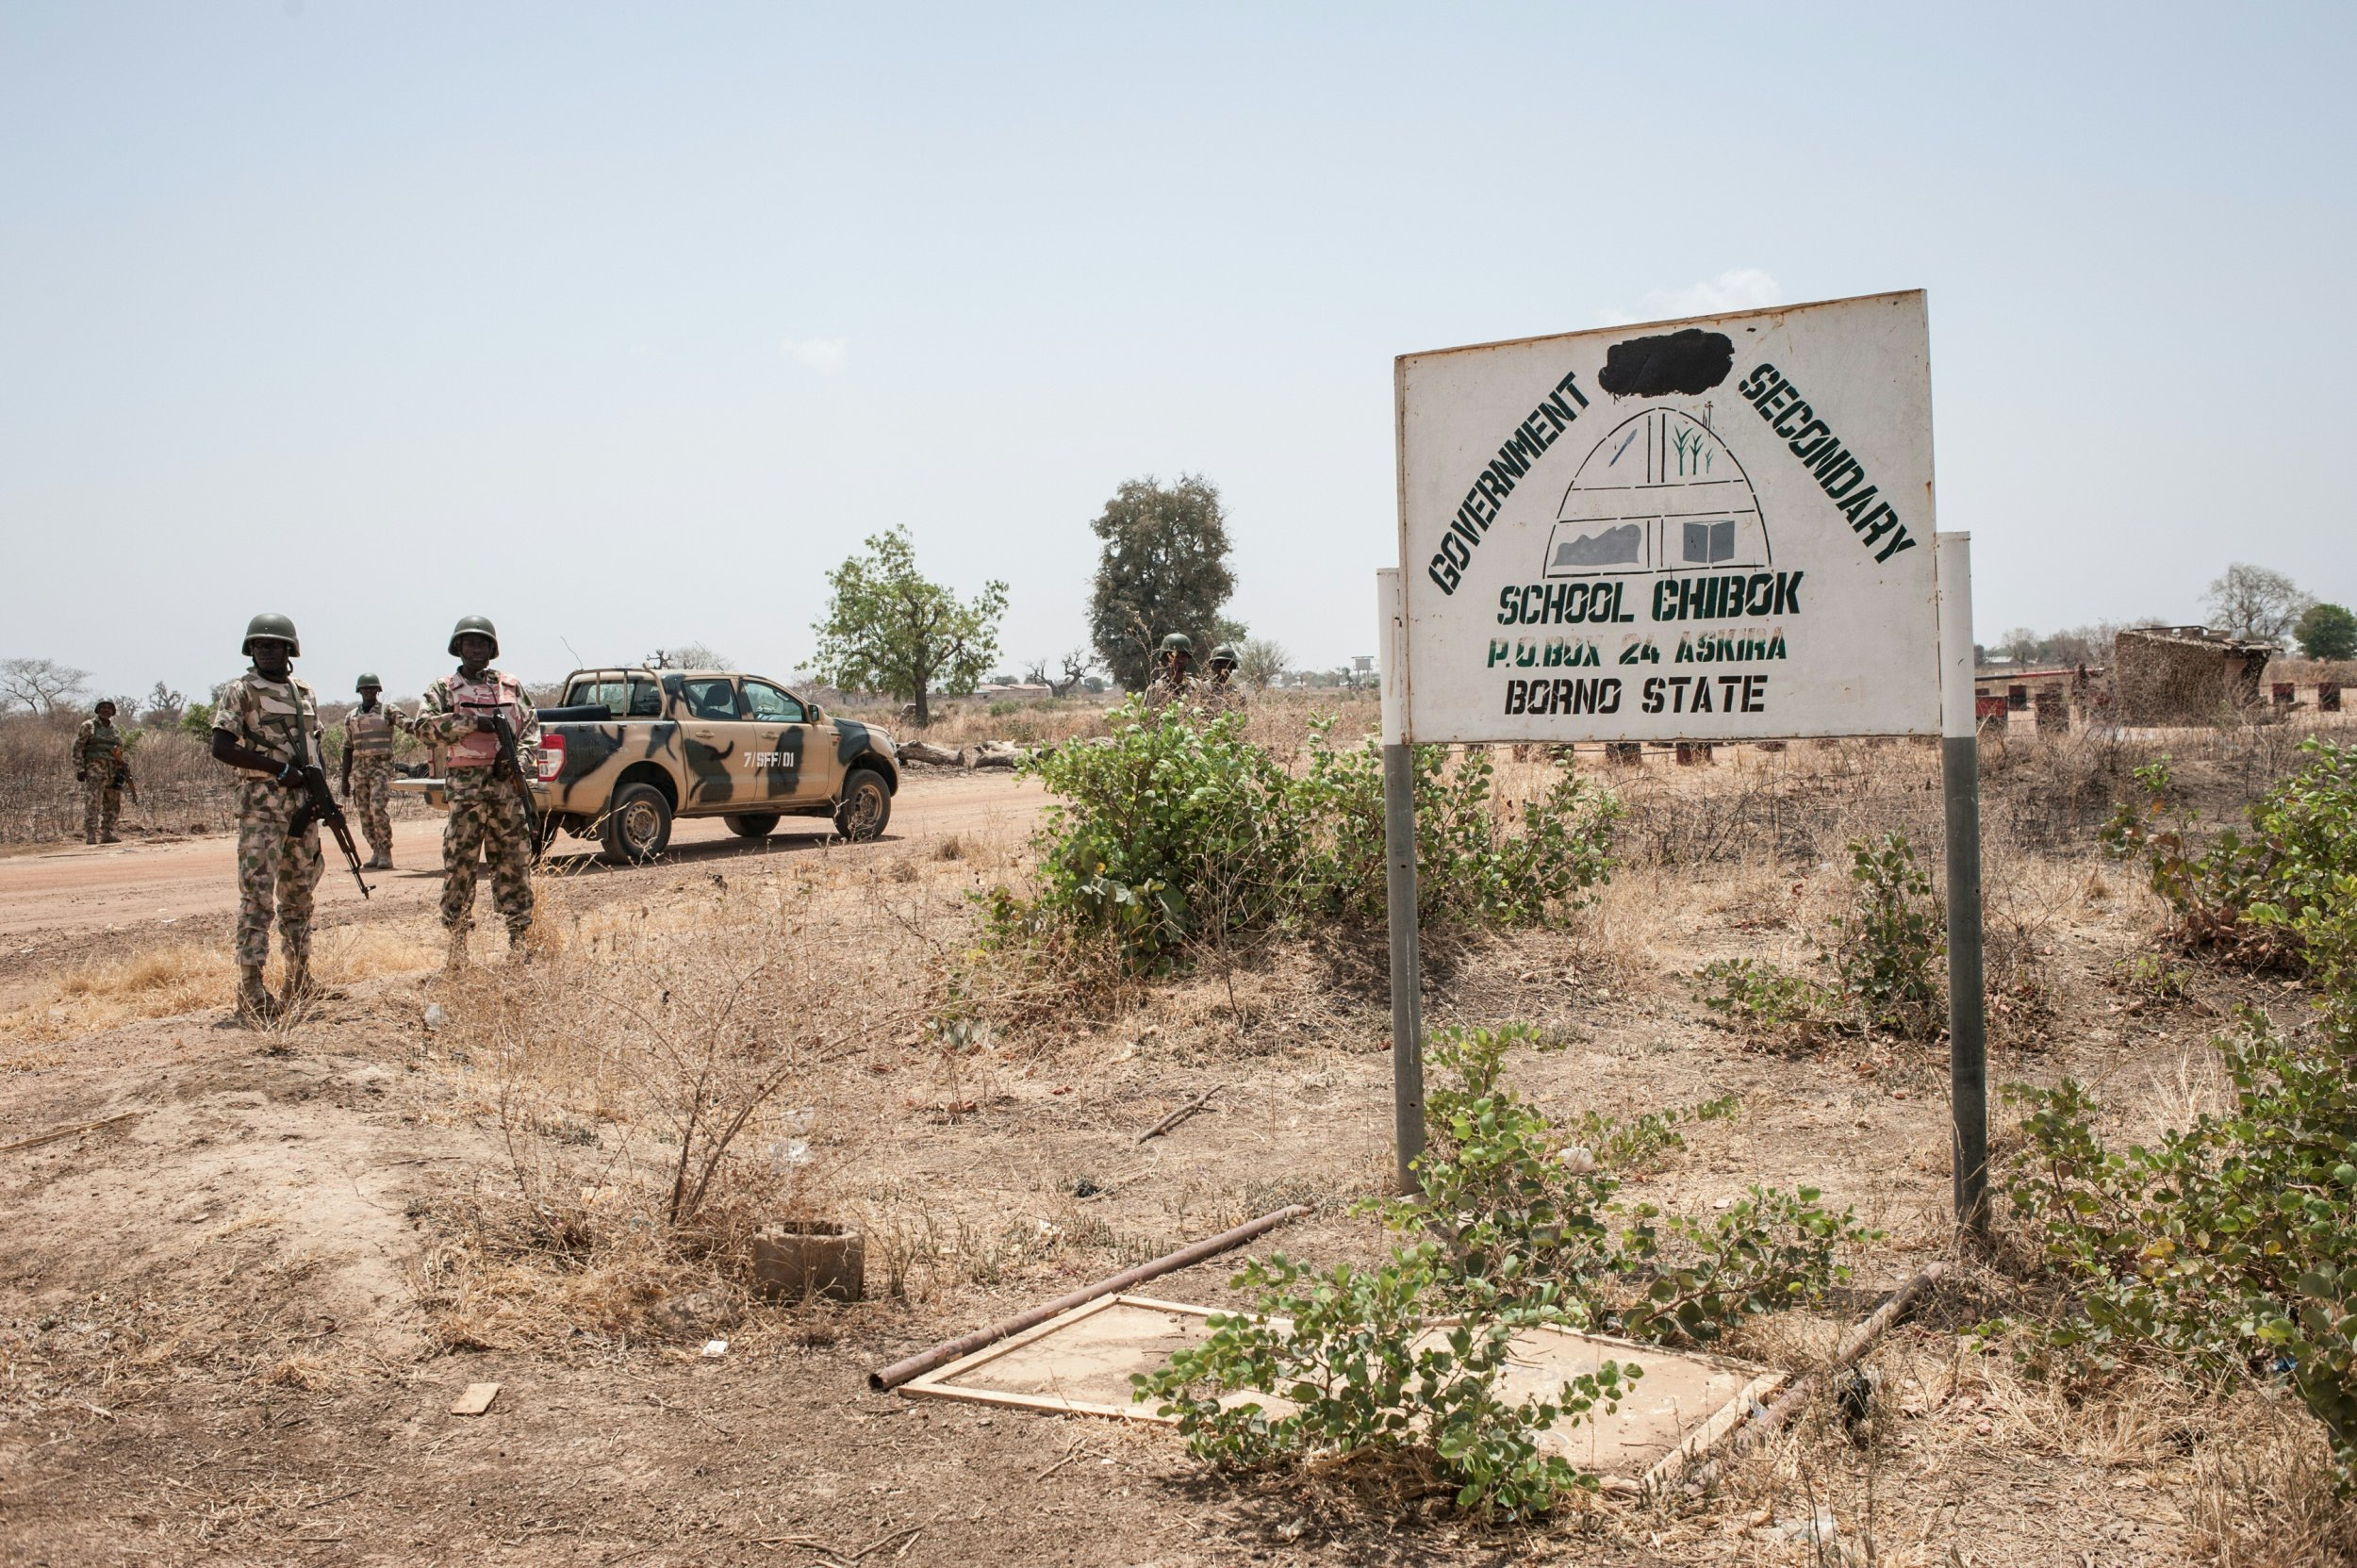 Nigerian soldiers at the Chibok school from where Boko Haram abducted 276 schoolgirls in April 2014.